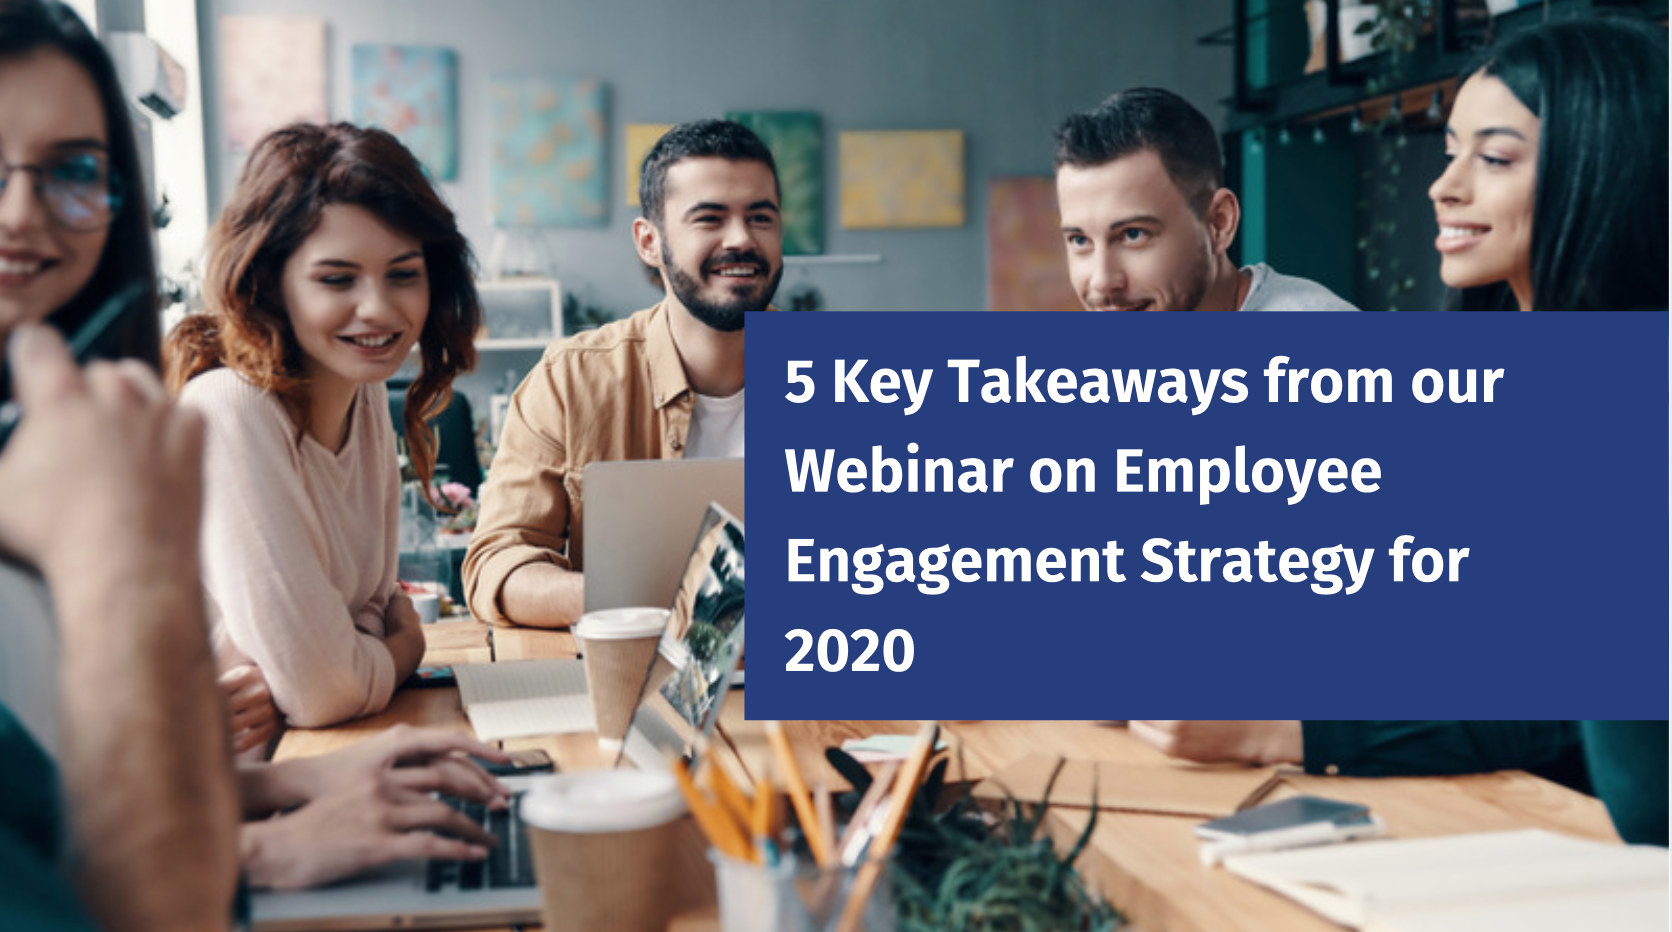 5 Key Takeaways from our Webinar on Employee Engagement Strategy for 2020